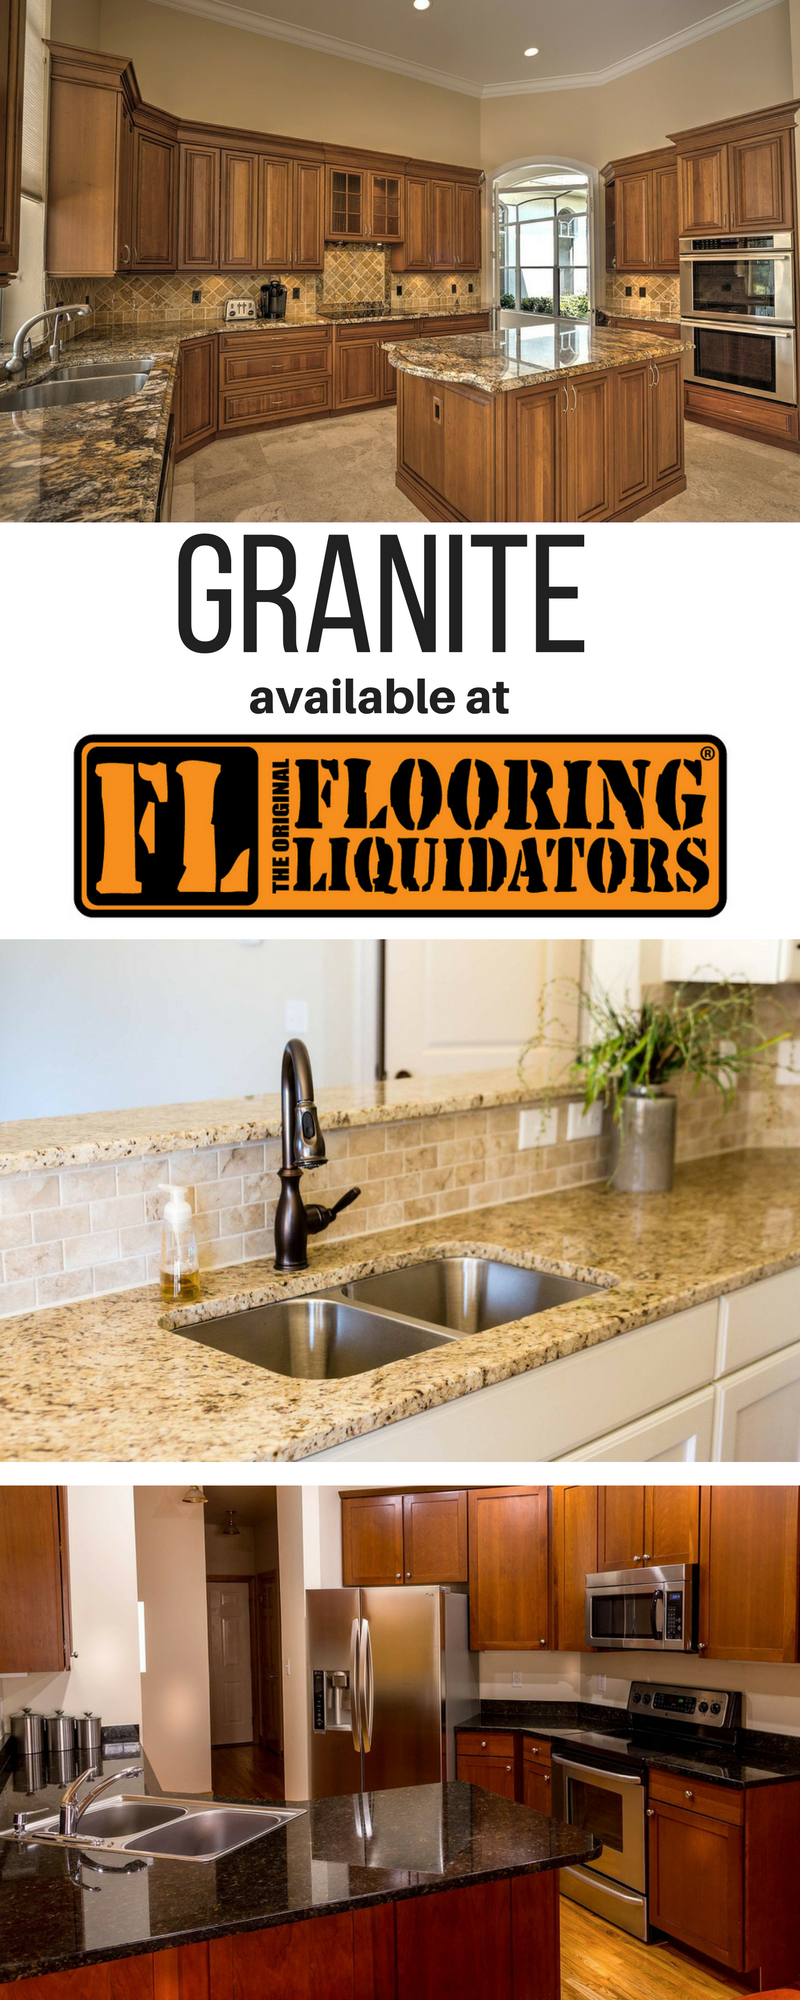 Granite Is Available At Flooring Liquidators Make Your Kitchen Stand Out With Stunning Countertops